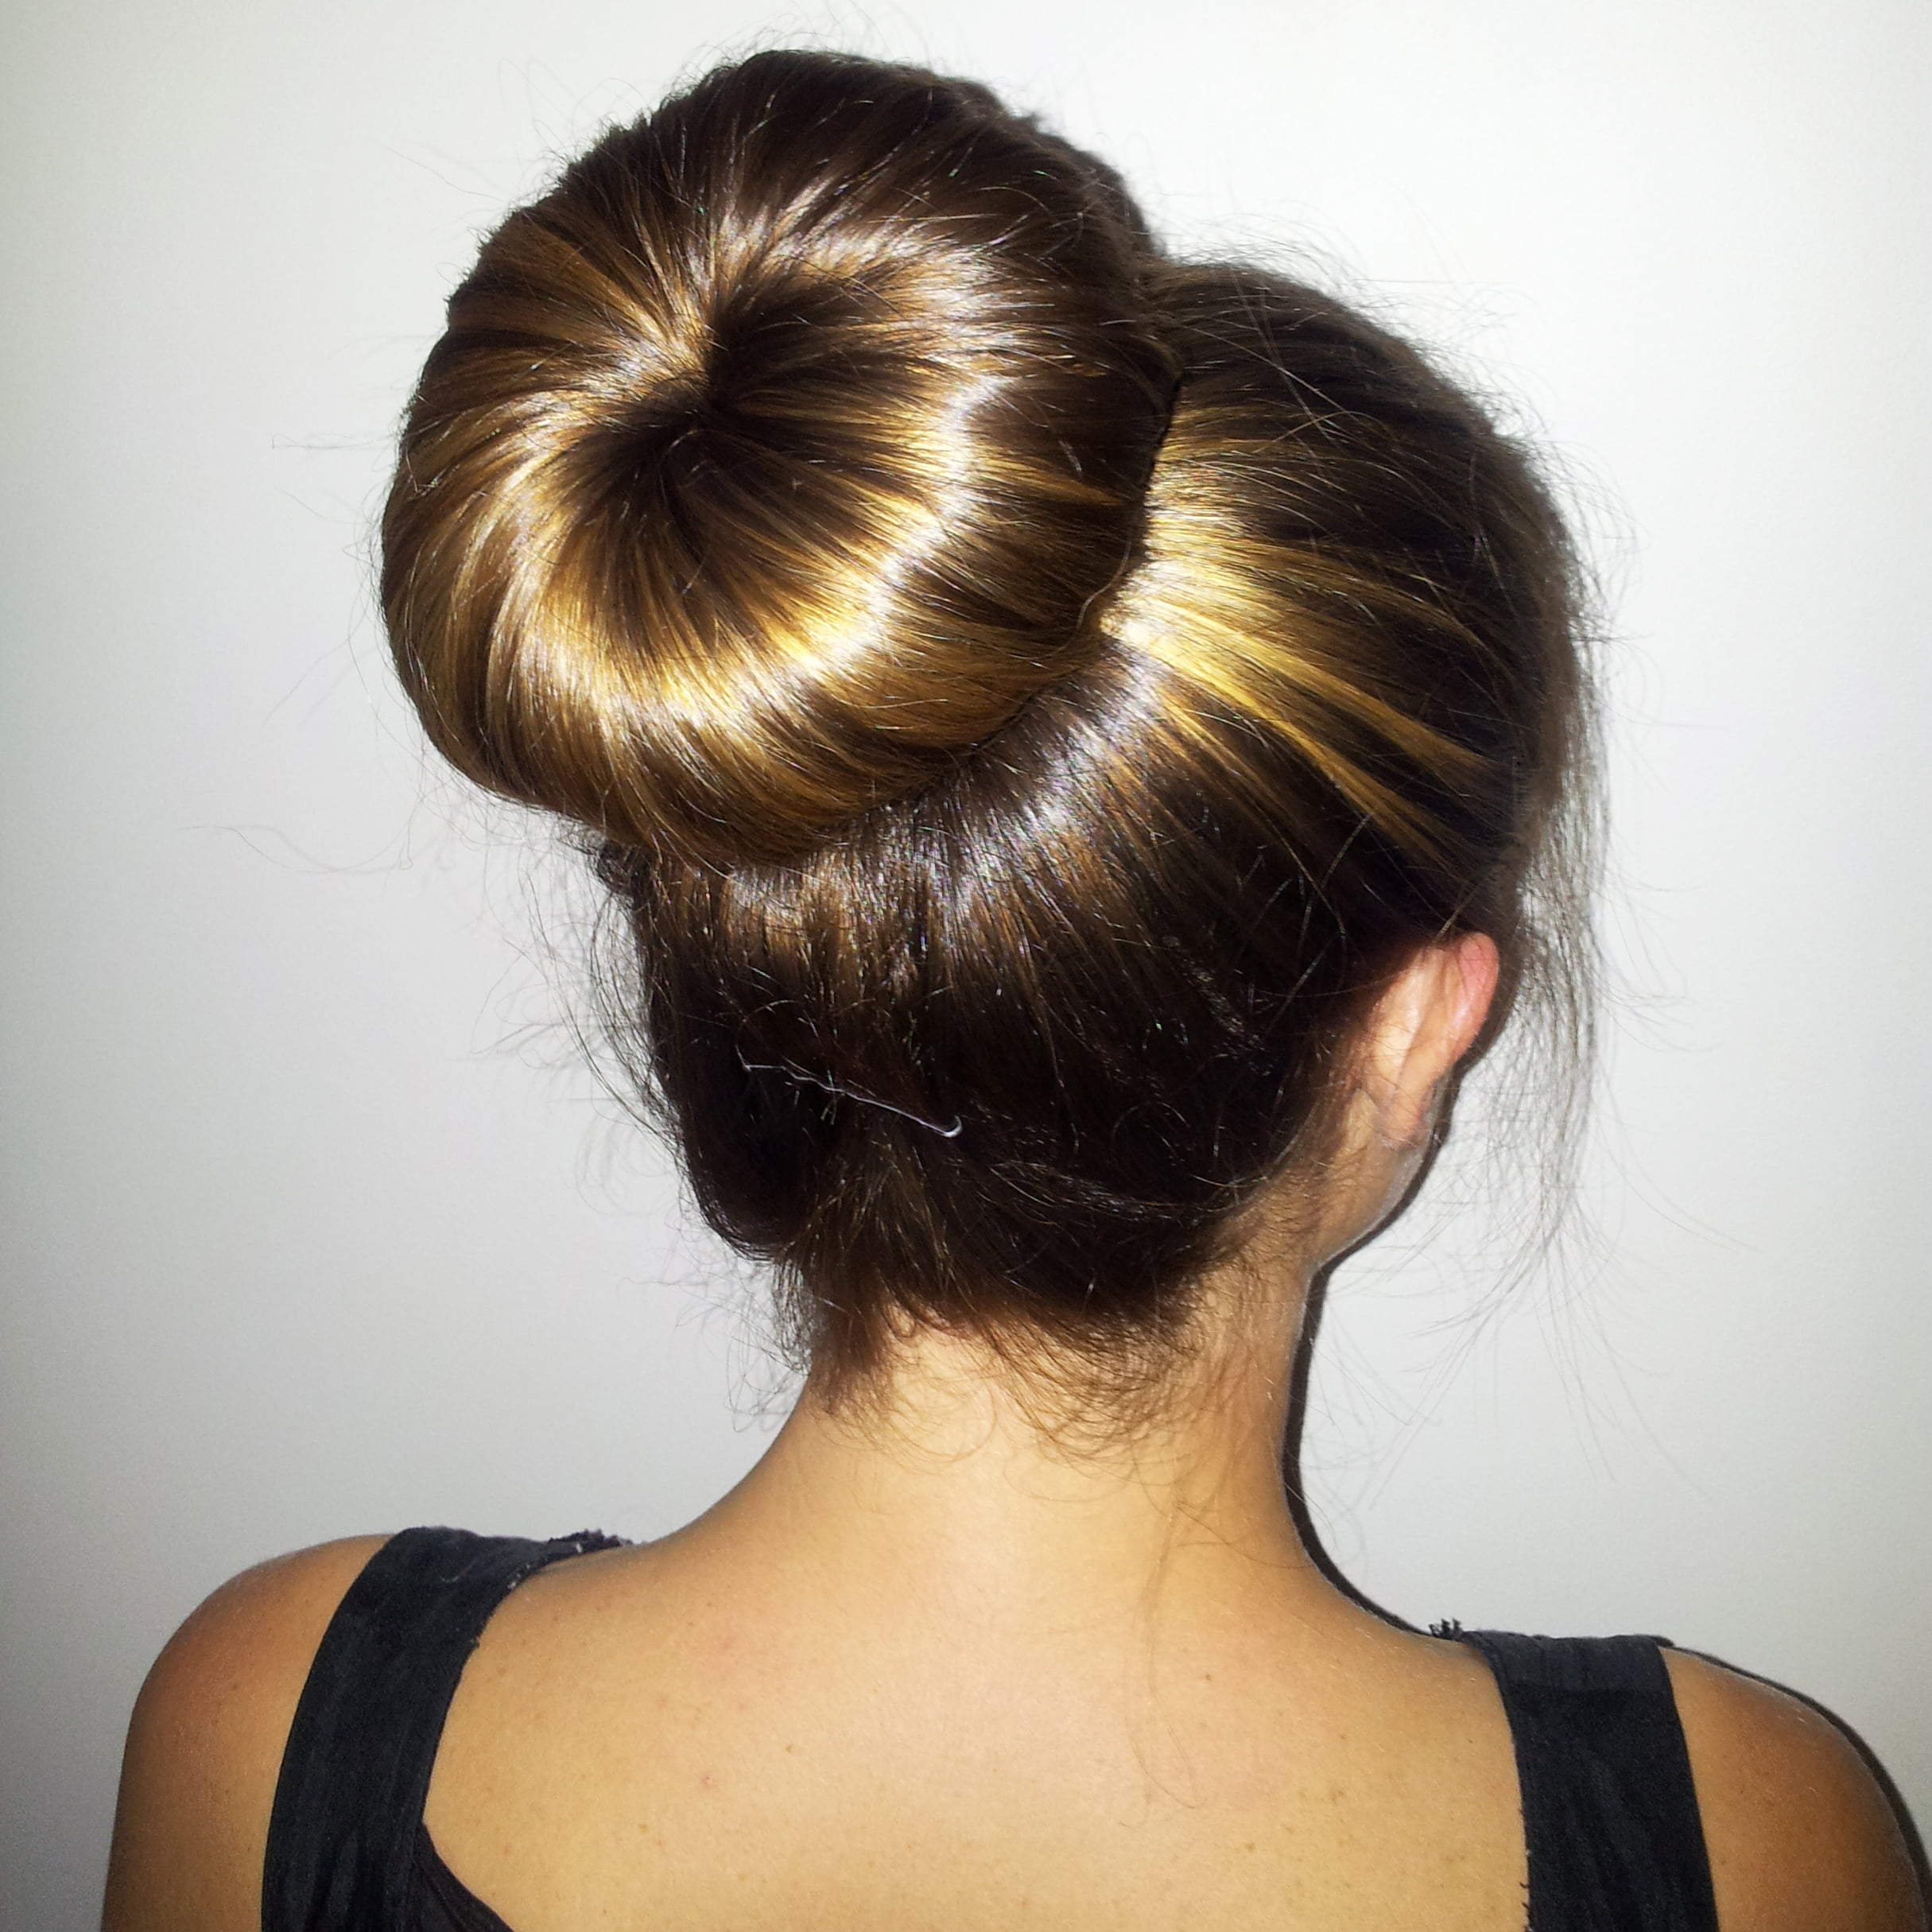 Hairstyle Girl Buns: 12 Useful Amazing Buns Hairstyles For Women 2016-2017